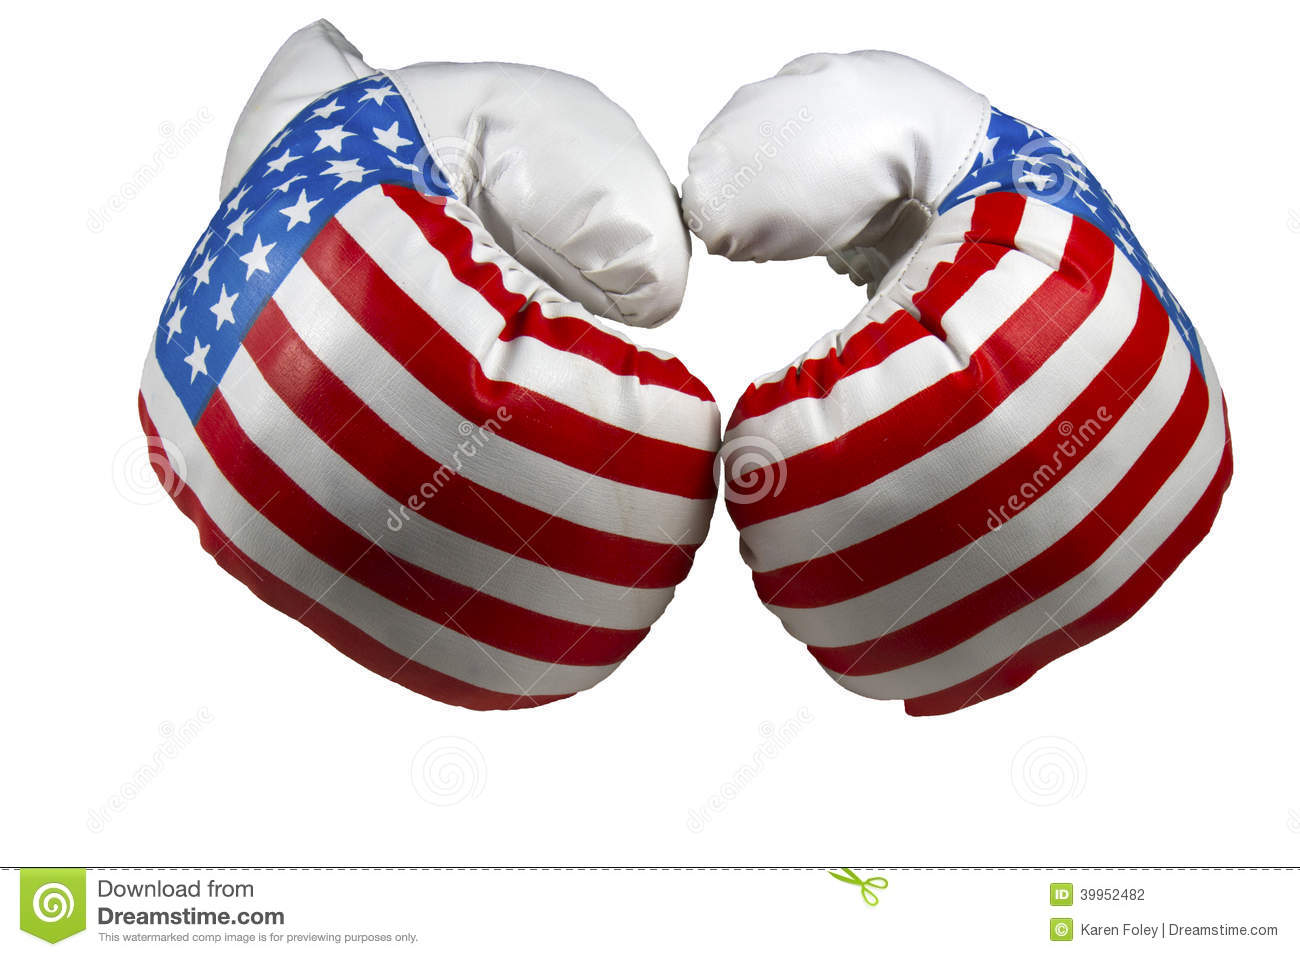 Red White And Blue Boxing Gloves Stock Photo - Image: 39952482